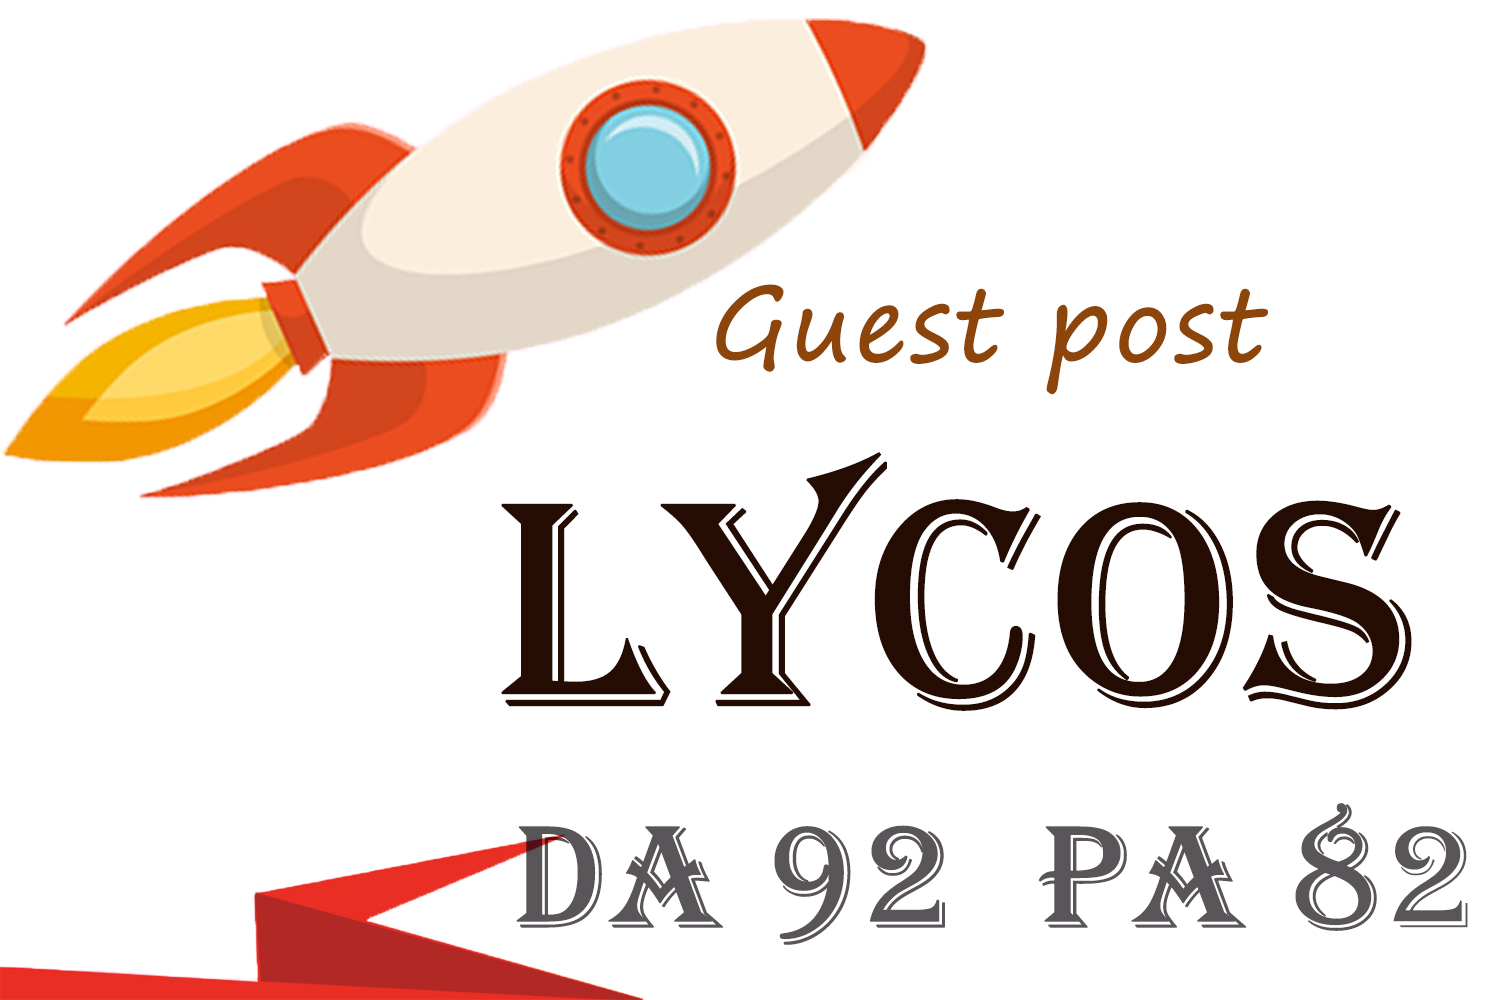 Guest Post on Lycos. com with high DA 92